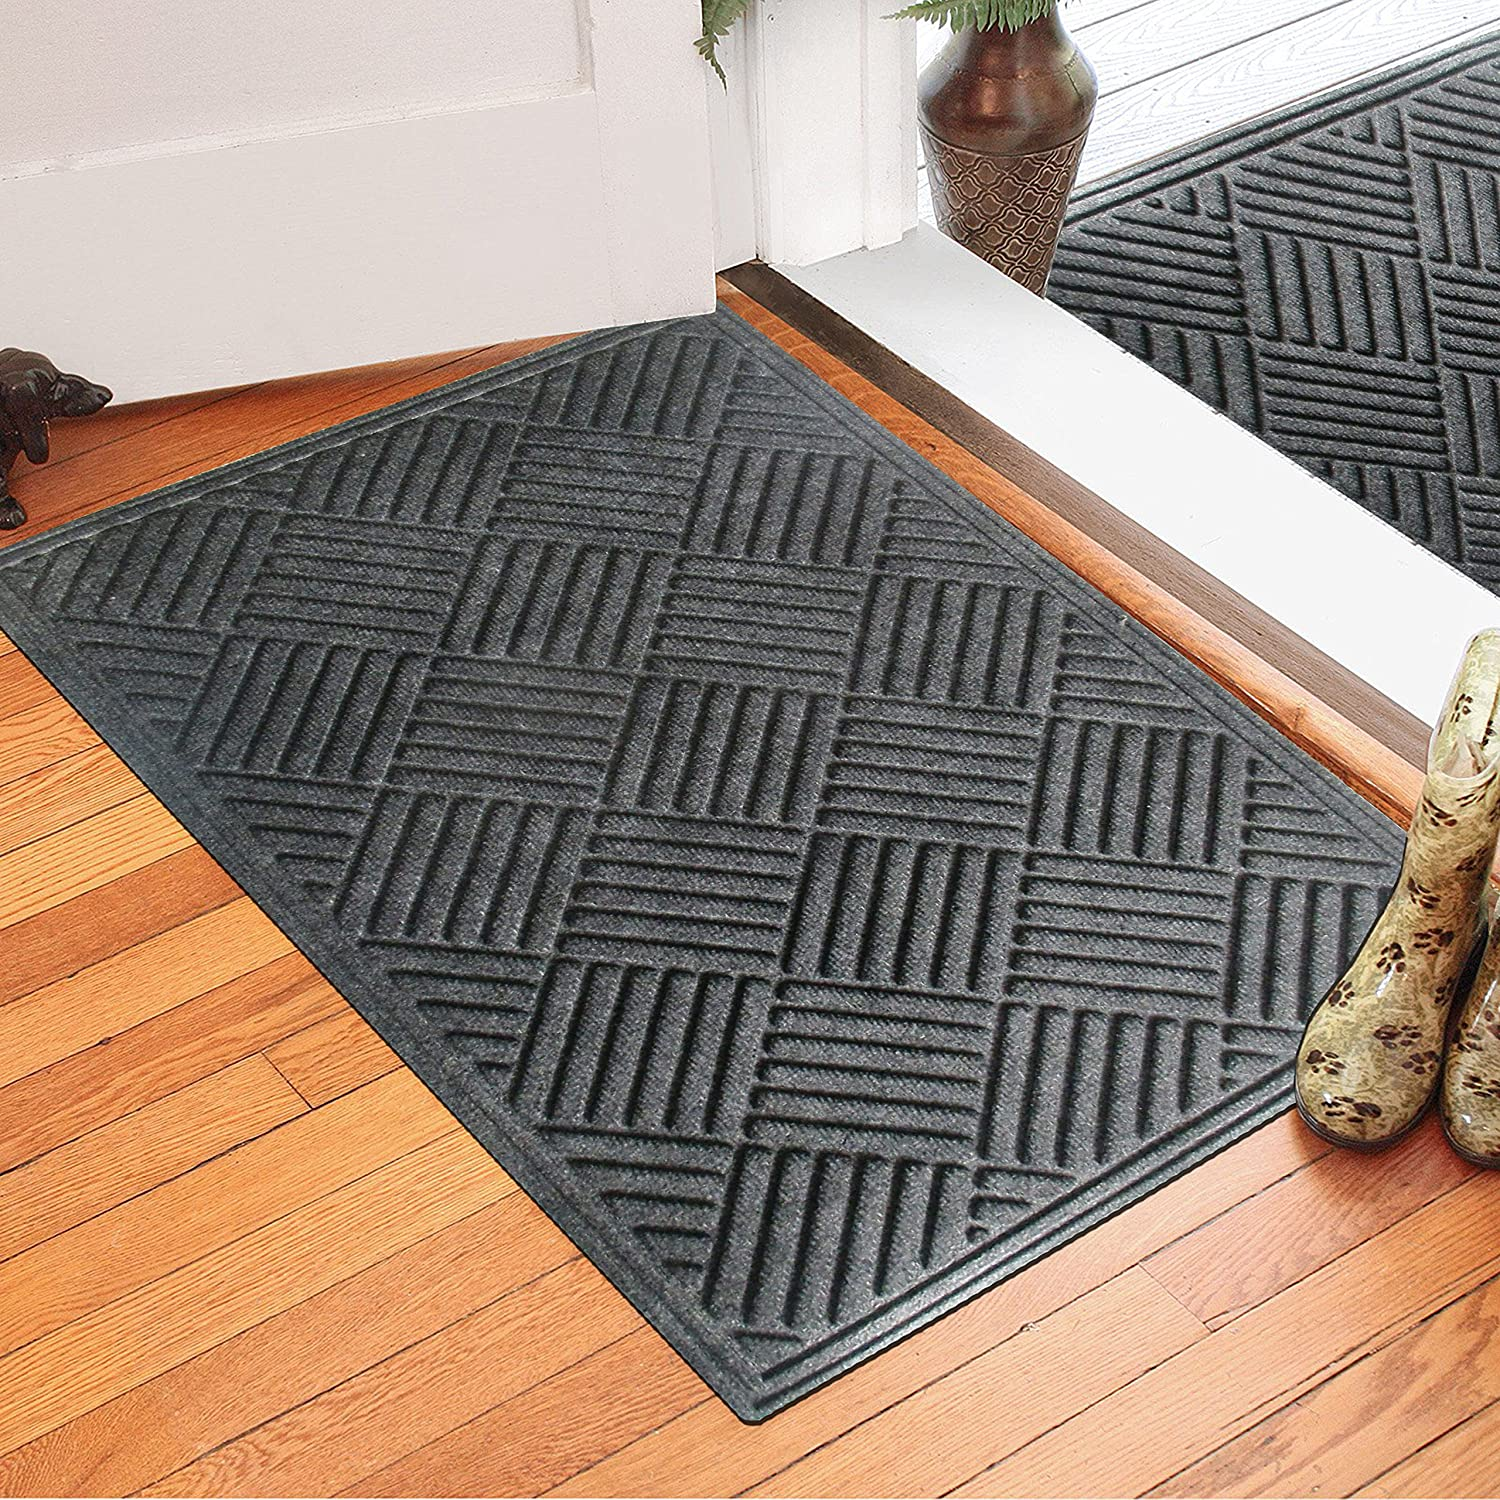 EHC Rubber Polypropylene Non-Slip Indoors or Outdoor Dust & Water Retaining Door Mat, 60 X 90cms- Grey Elitehousewares